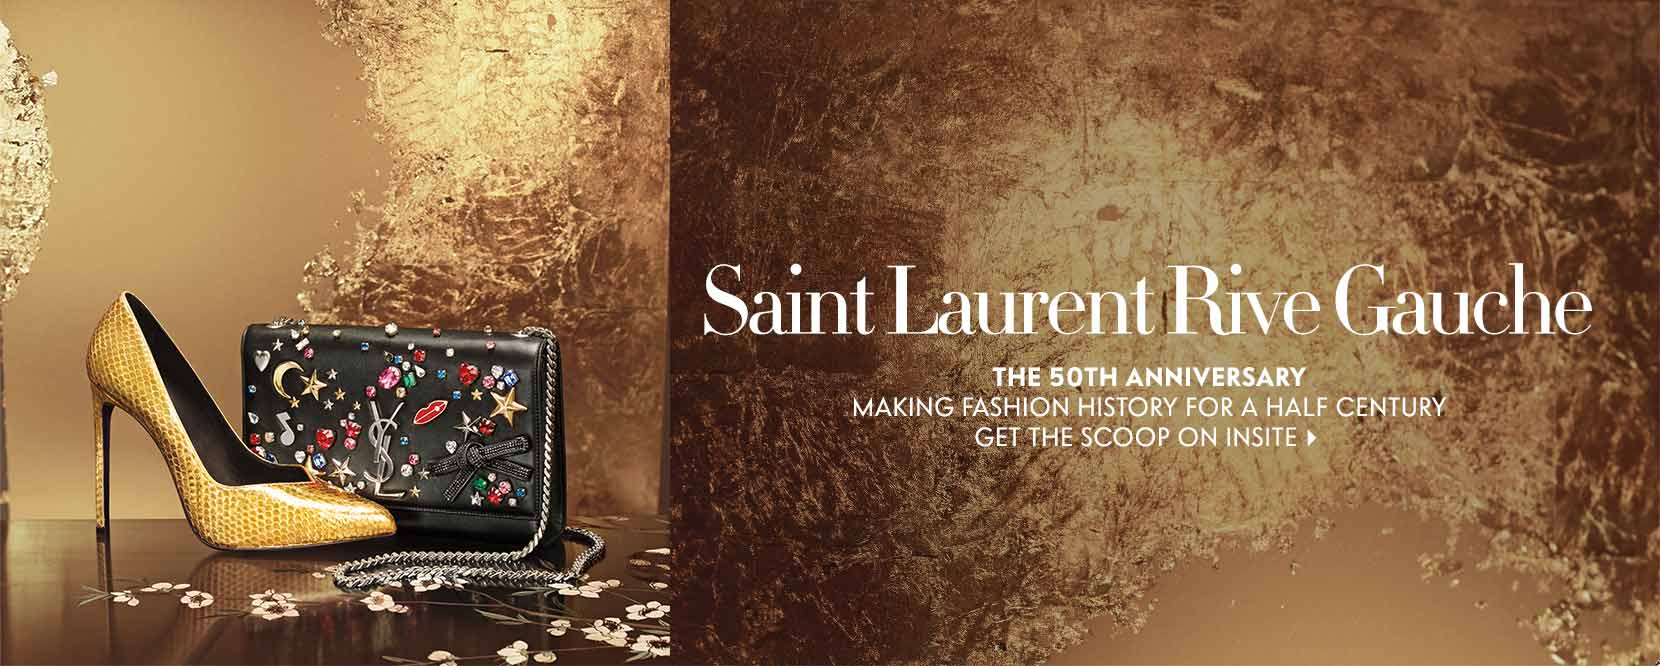 Saint Laurent Rive Gauche the 50th anniversary making fashion history for half a century. Get the scoop on Insite